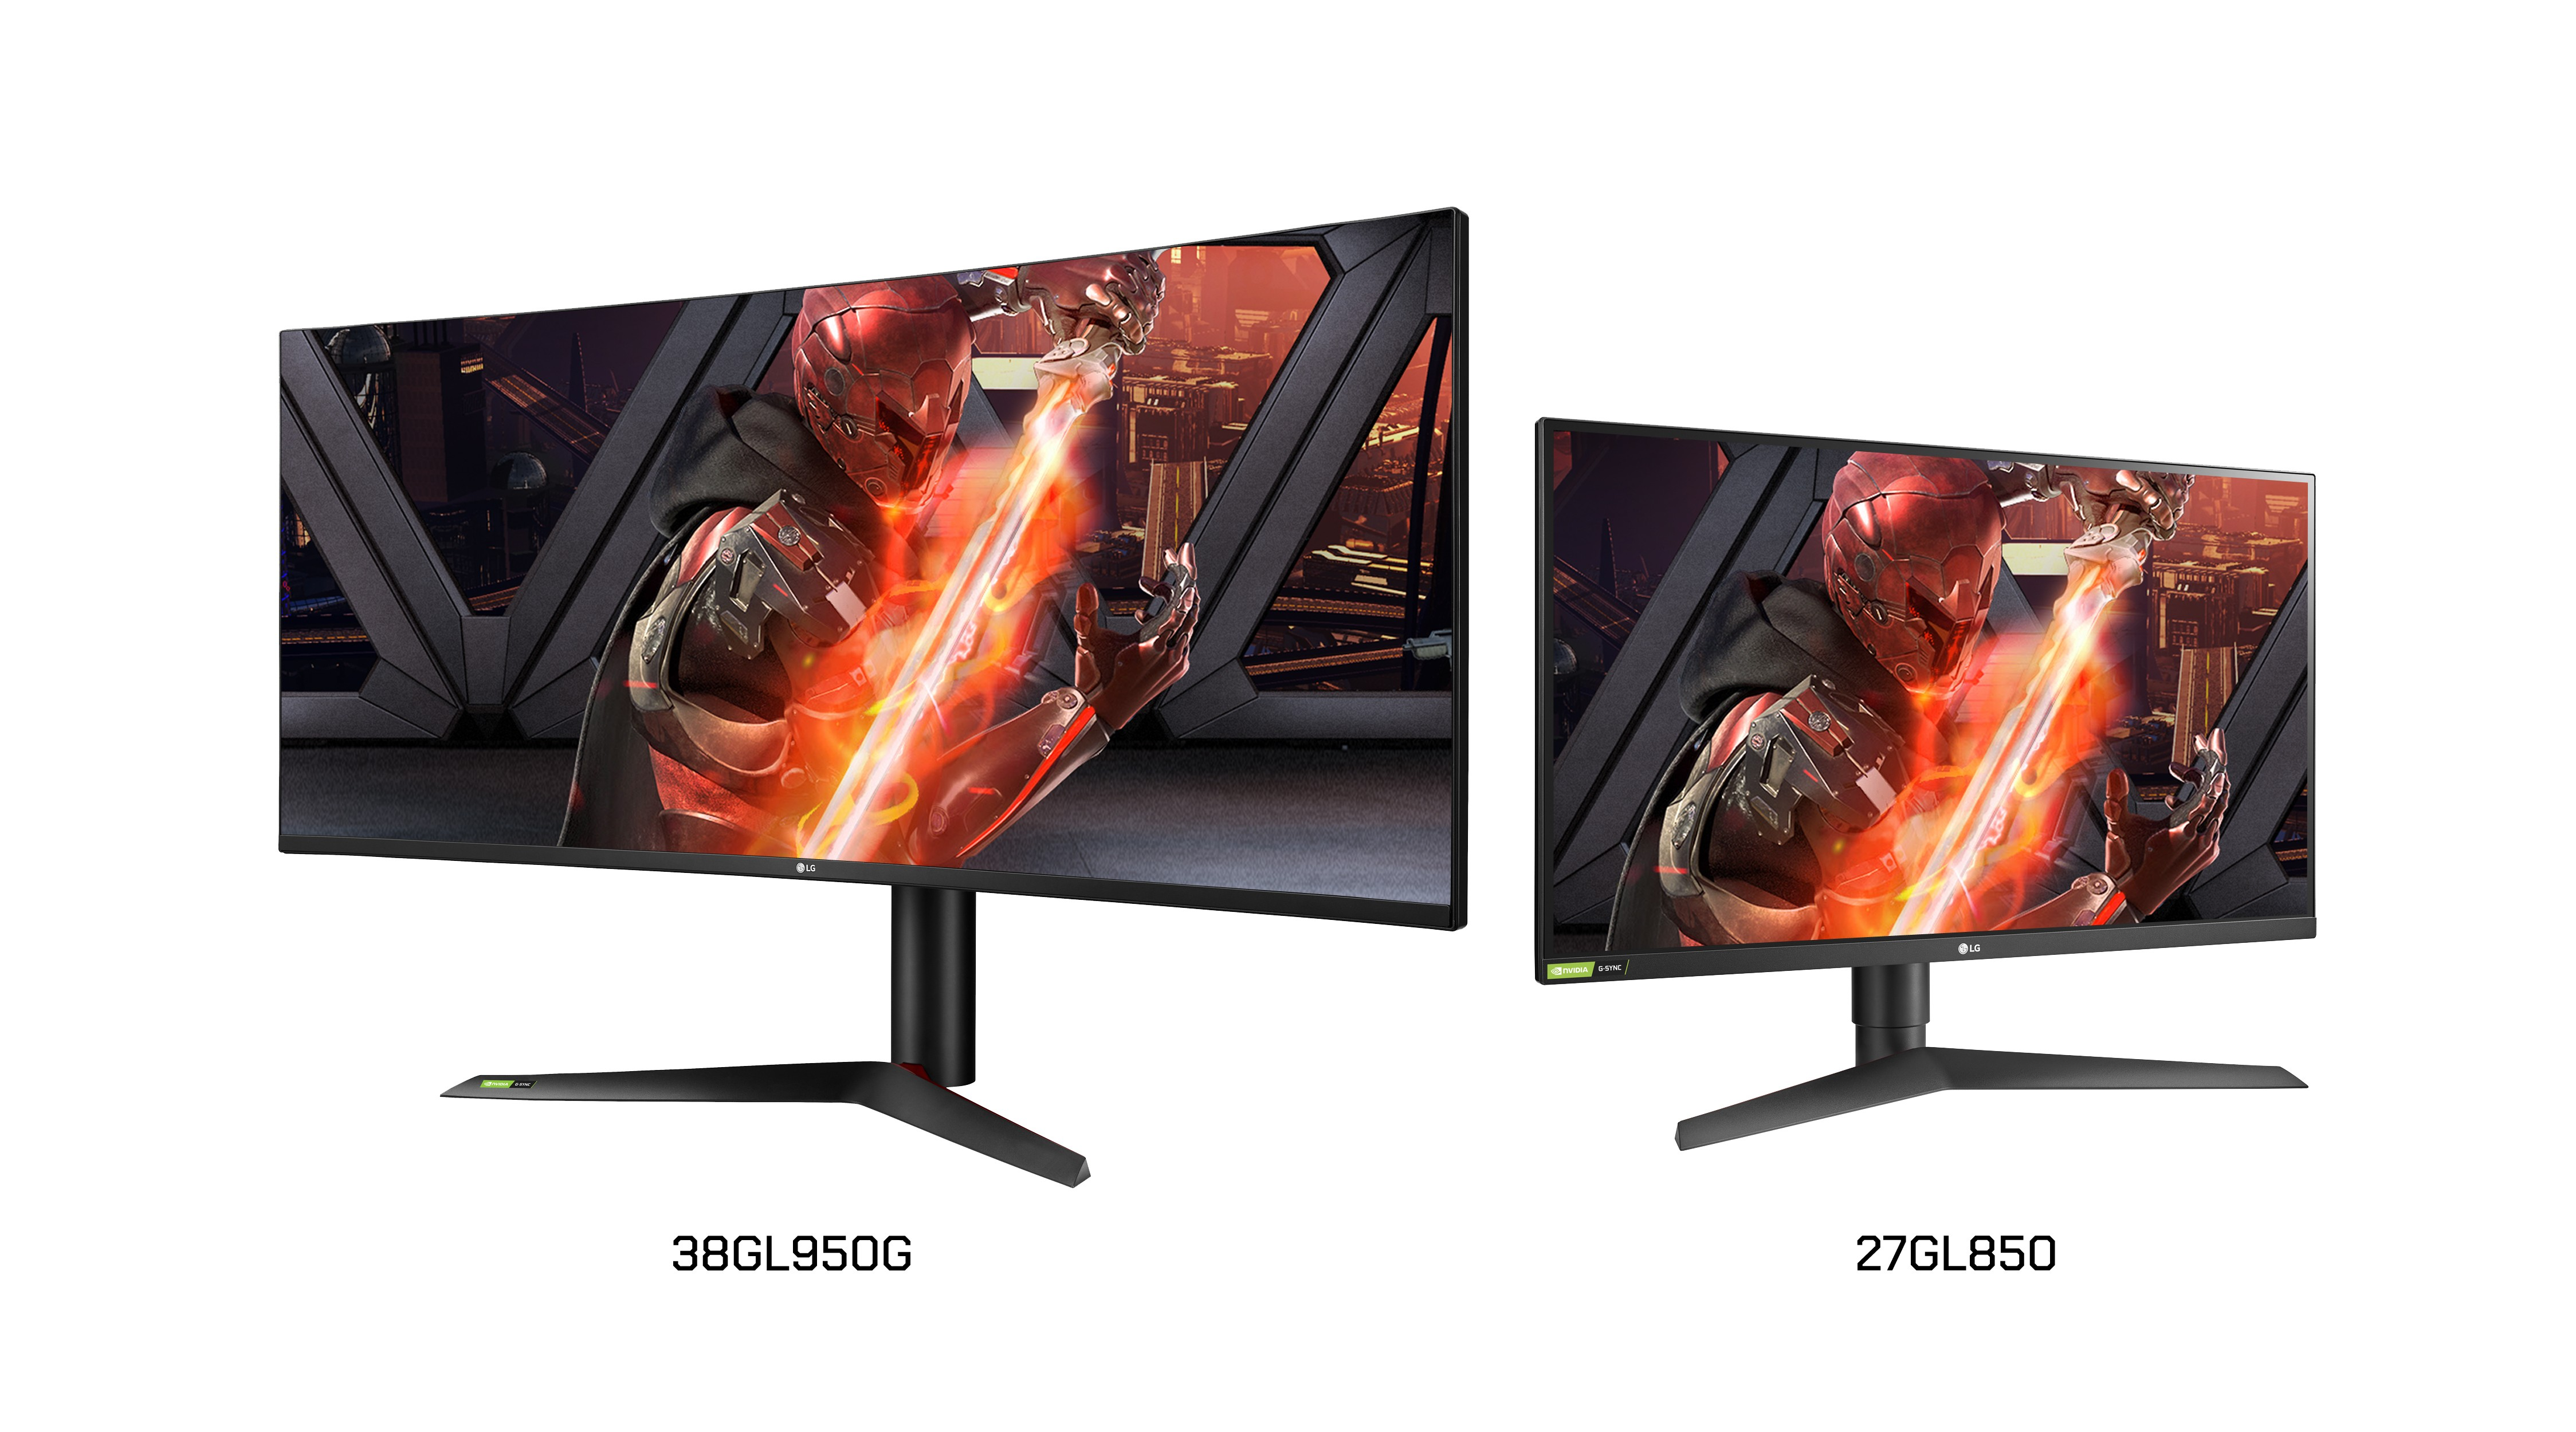 A right-side view of LG UltraGear Nano IPS G-SYNC Gaming Monitor model 38GL950G and a left-side view of model 27GL850.